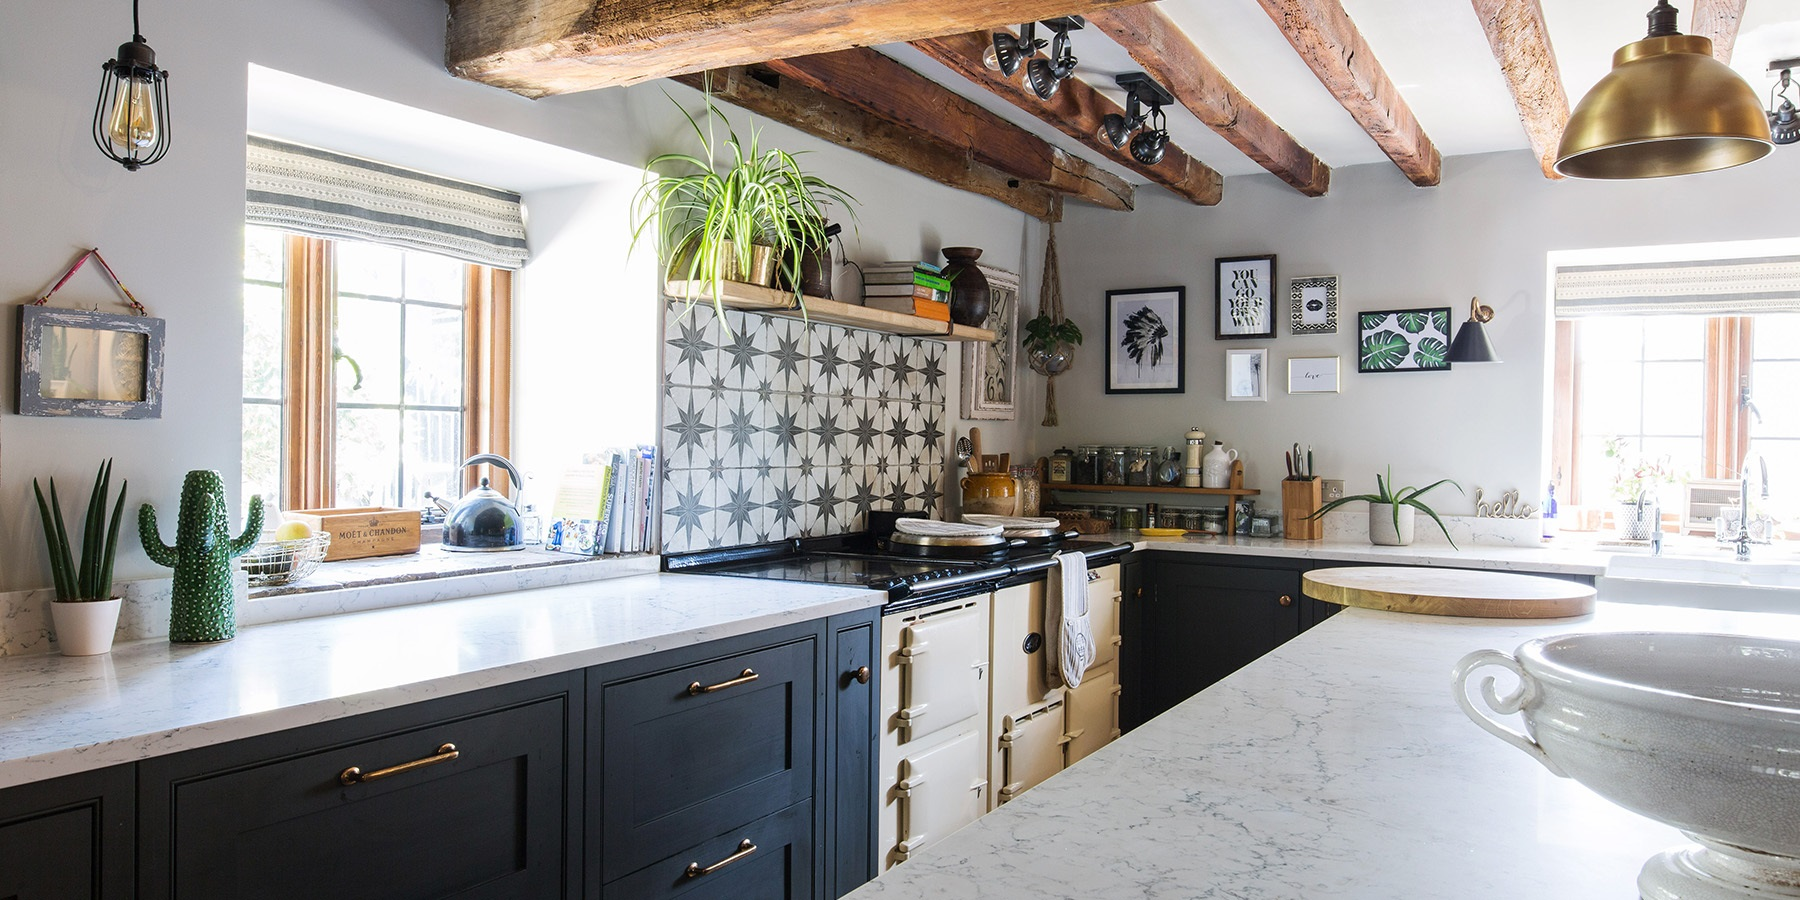 Bespoke, Rustic Shaker Kitchen - Handmade Wellsdown cabinetry handpainted in Studio Green by Farrow & Ball, with beautiful brass handles and white worktops.